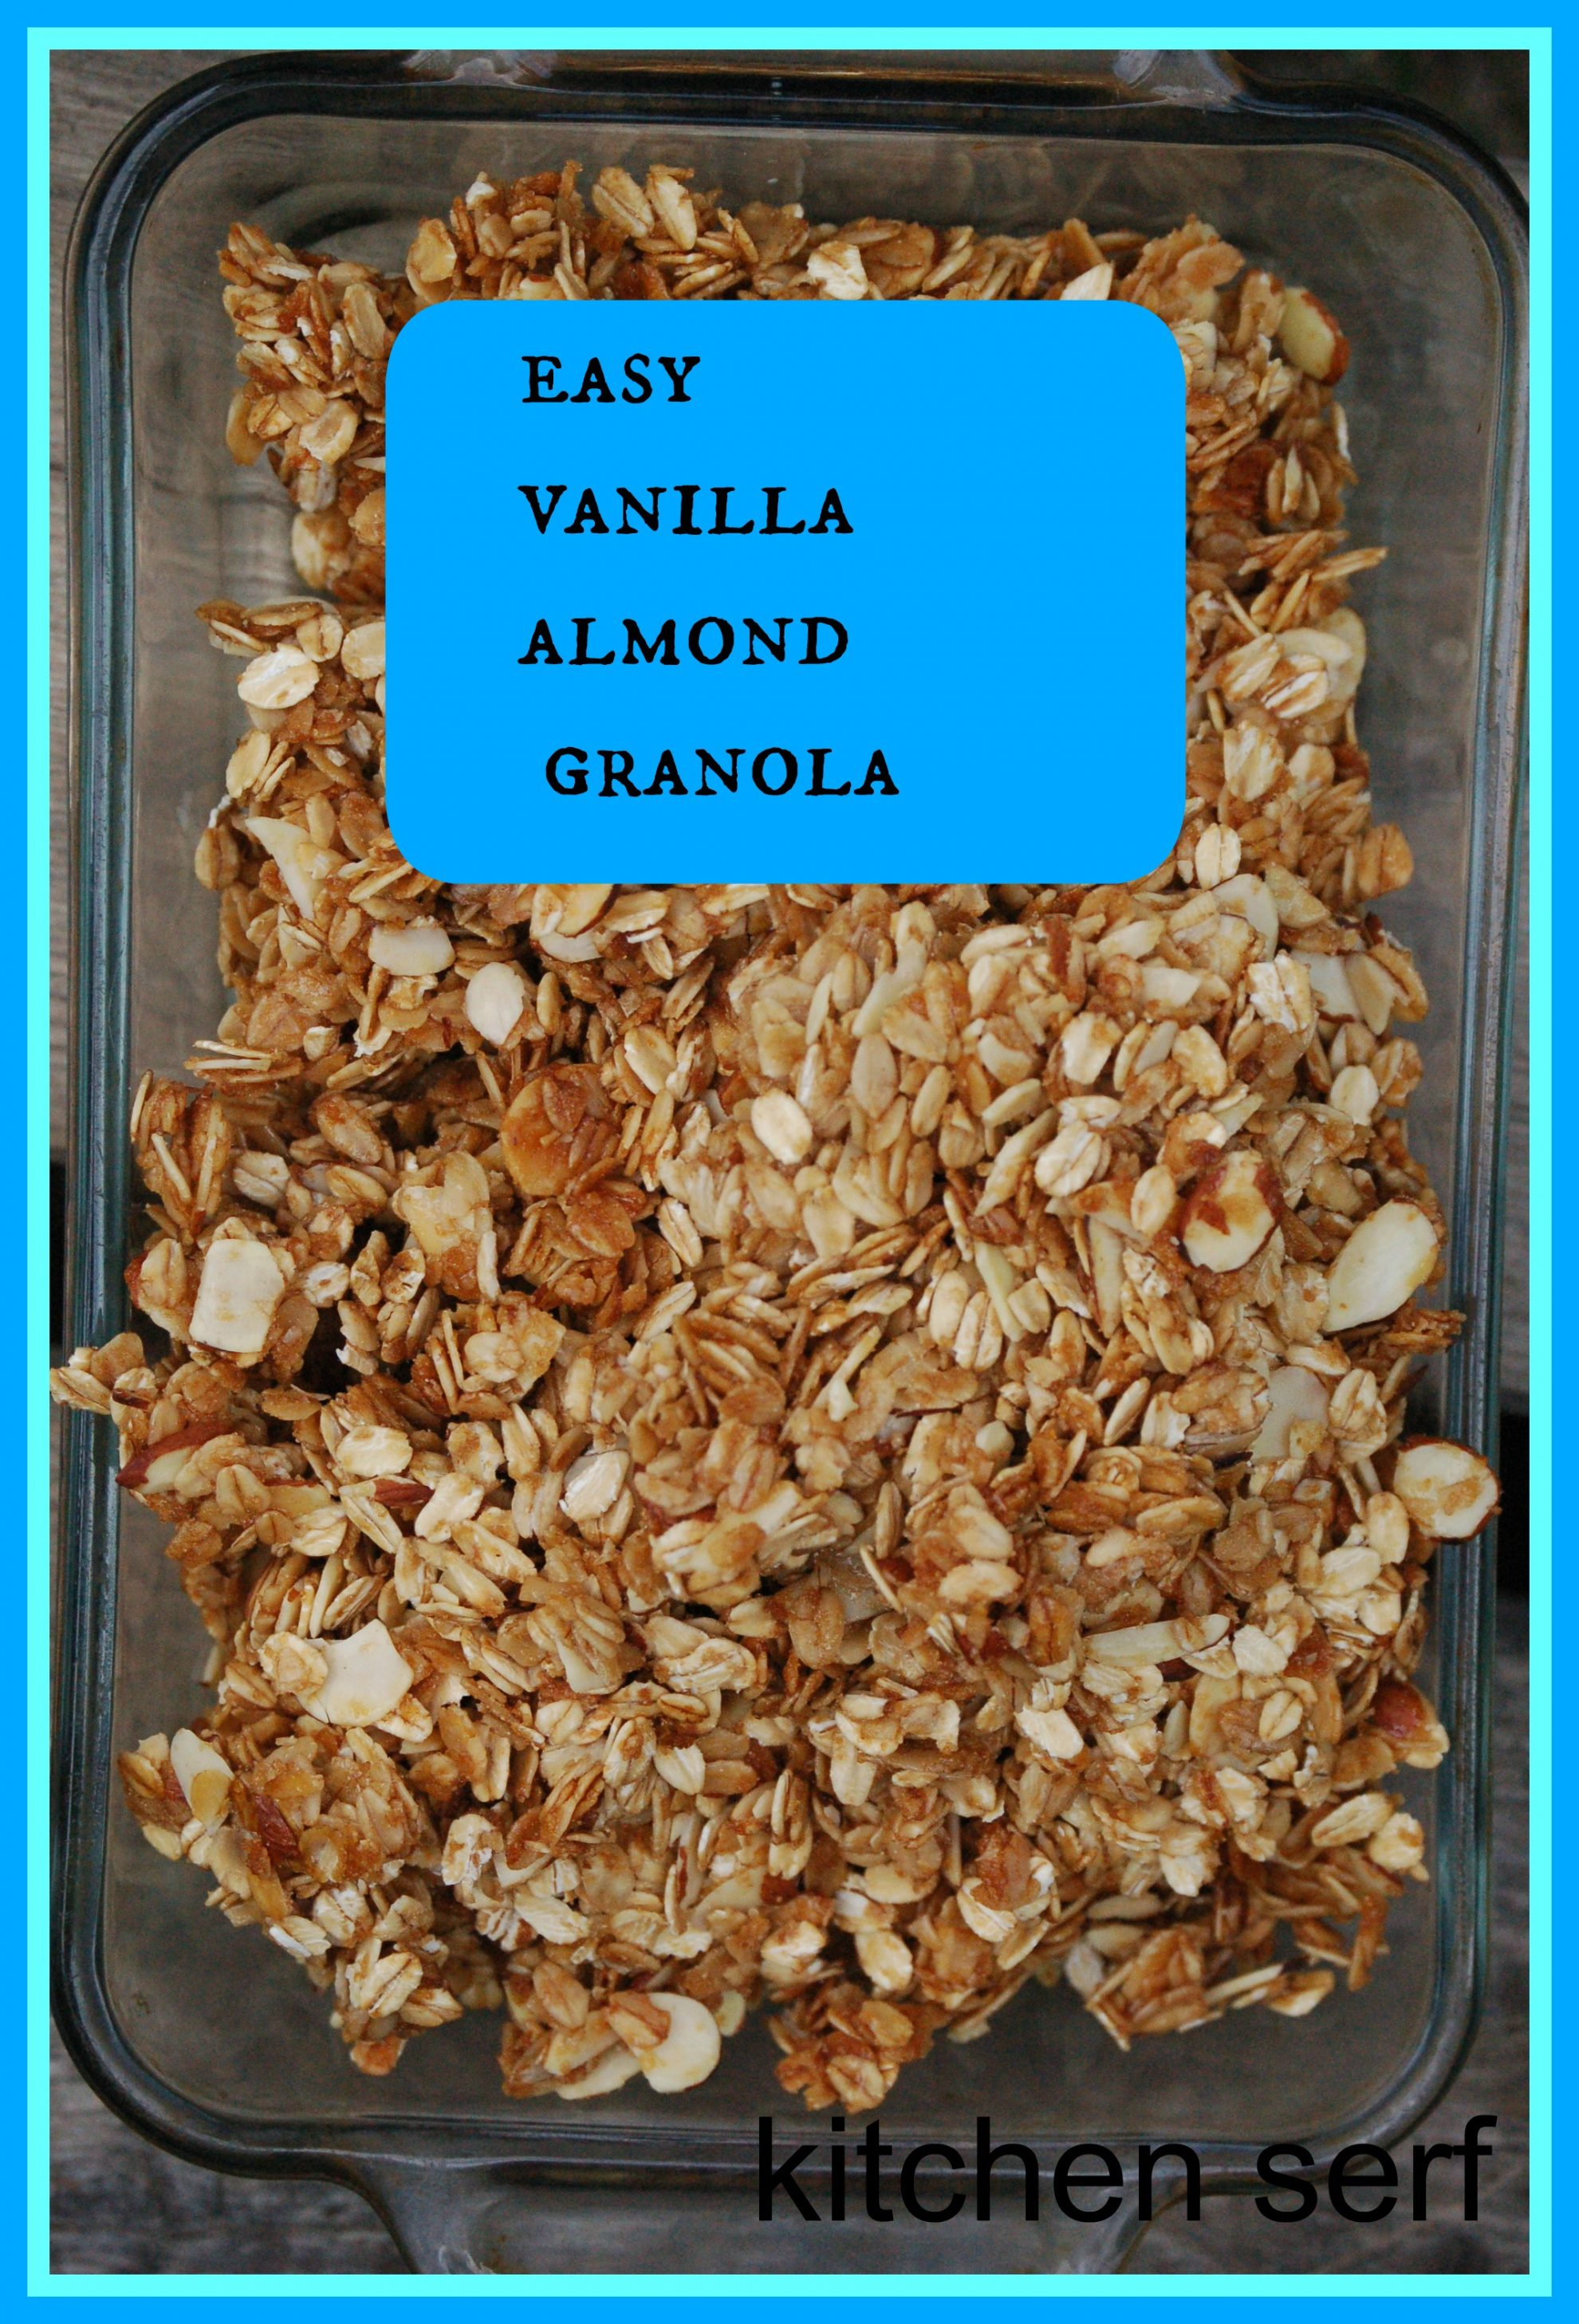 Easy vanilla almond granola easy vanilla almond granola tastes better than any granola you can buy in the store and ccuart Image collections